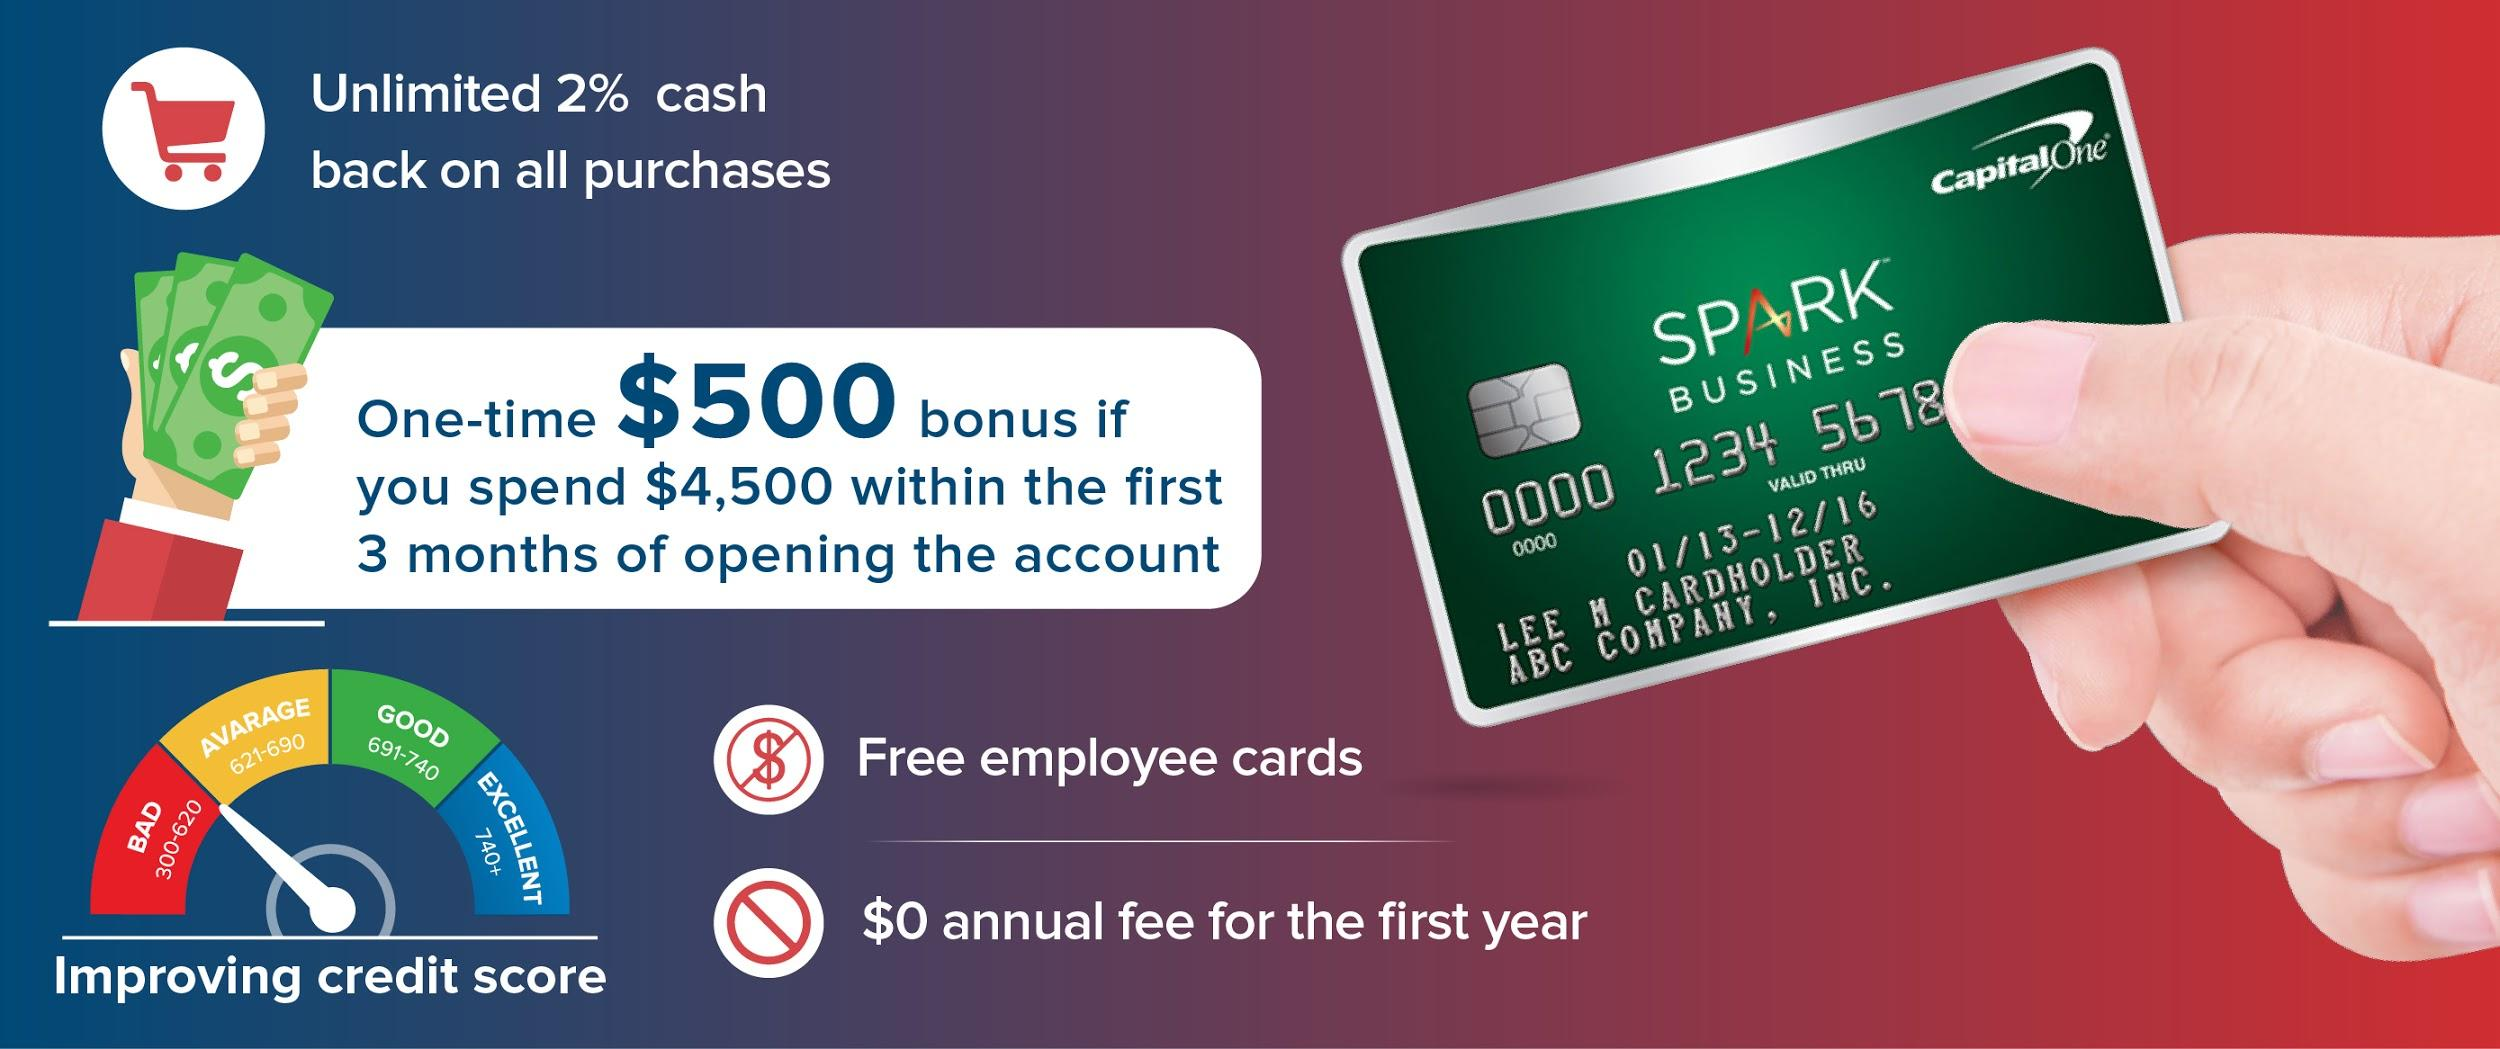 Capital one cash rewards credit cards creditloan capital one spark business cash back stats reheart Choice Image